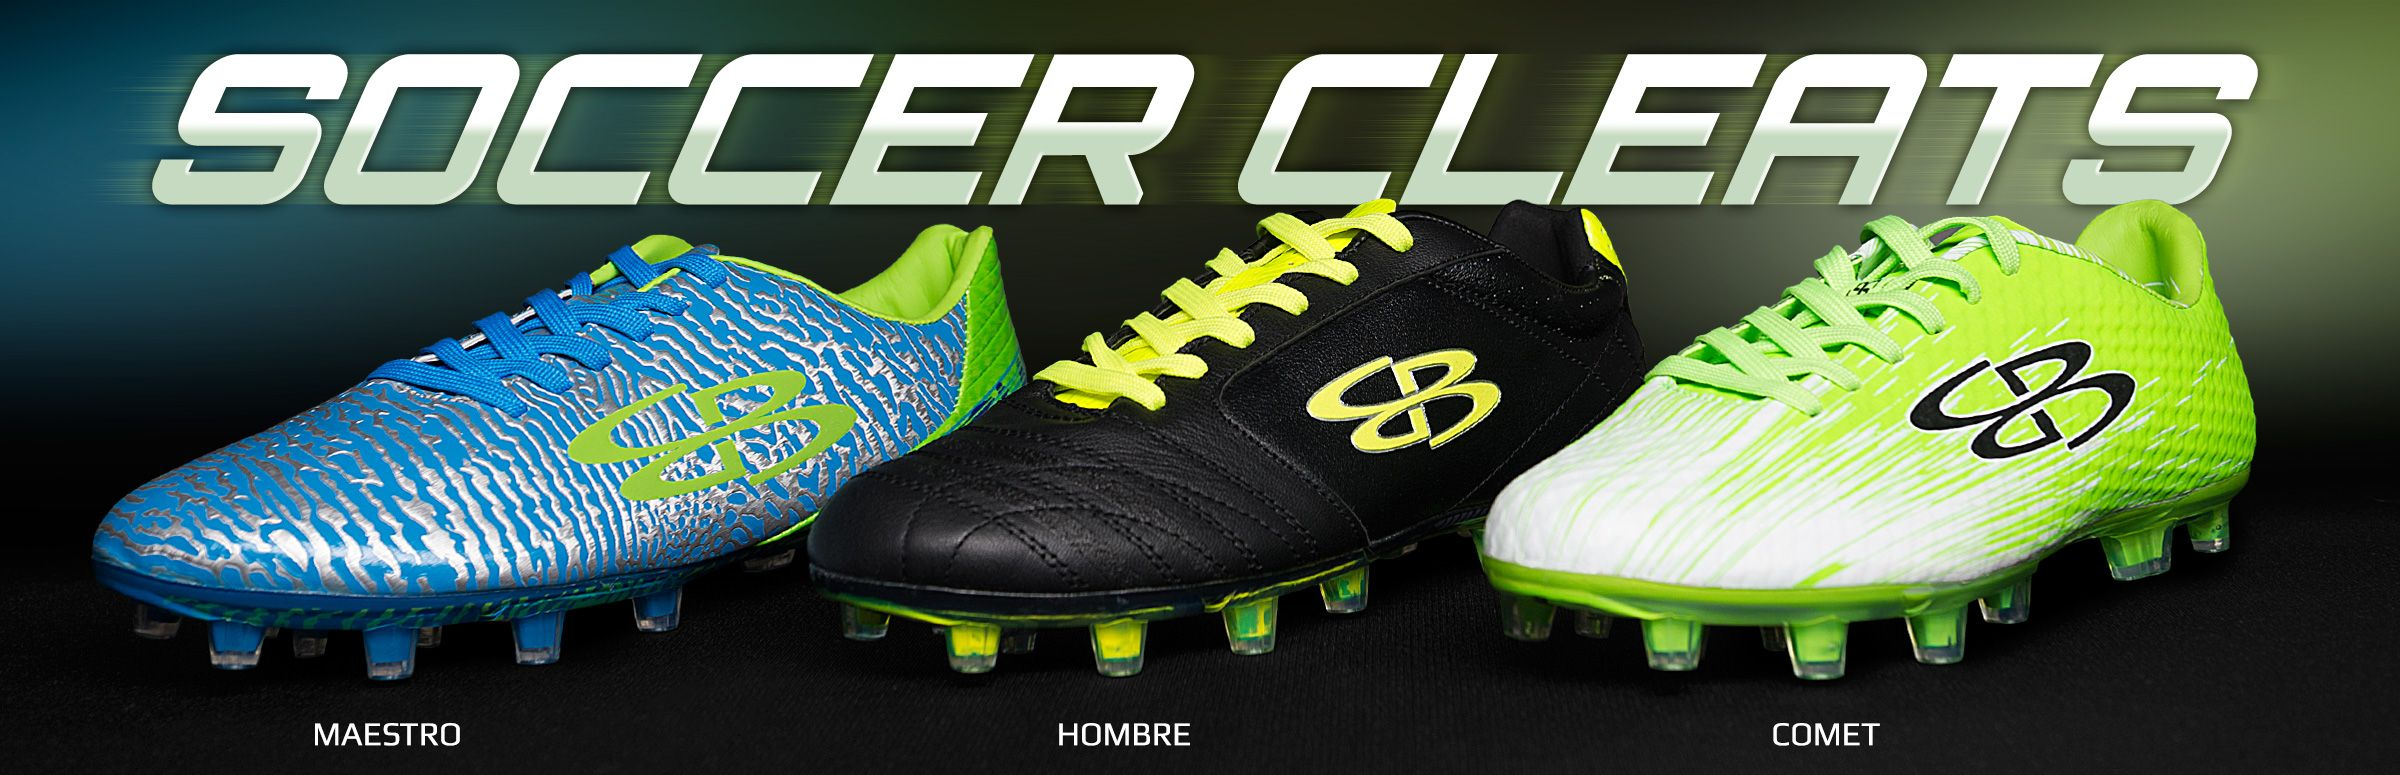 boombah soccer cleats